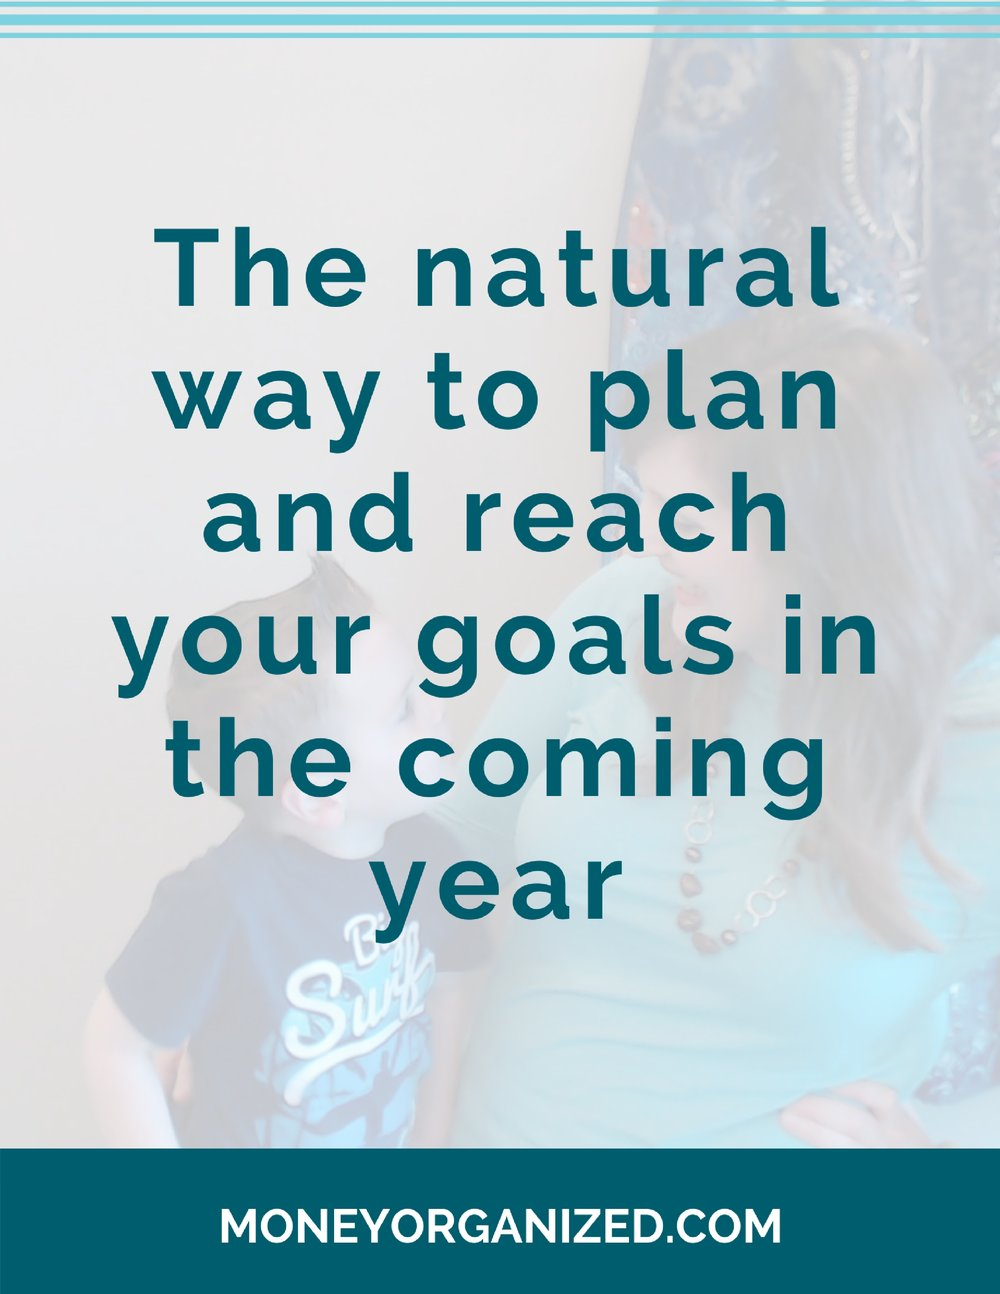 In years past I naturally rebelled against anyone telling me how to set goals and plan for the coming year (that's part of my personality type). But over the past week I have had so many moments and epiphanies when I organically assessed the past year that I wanted to share these tools with you too.     The natural way to plan and reach your goals for the coming year.